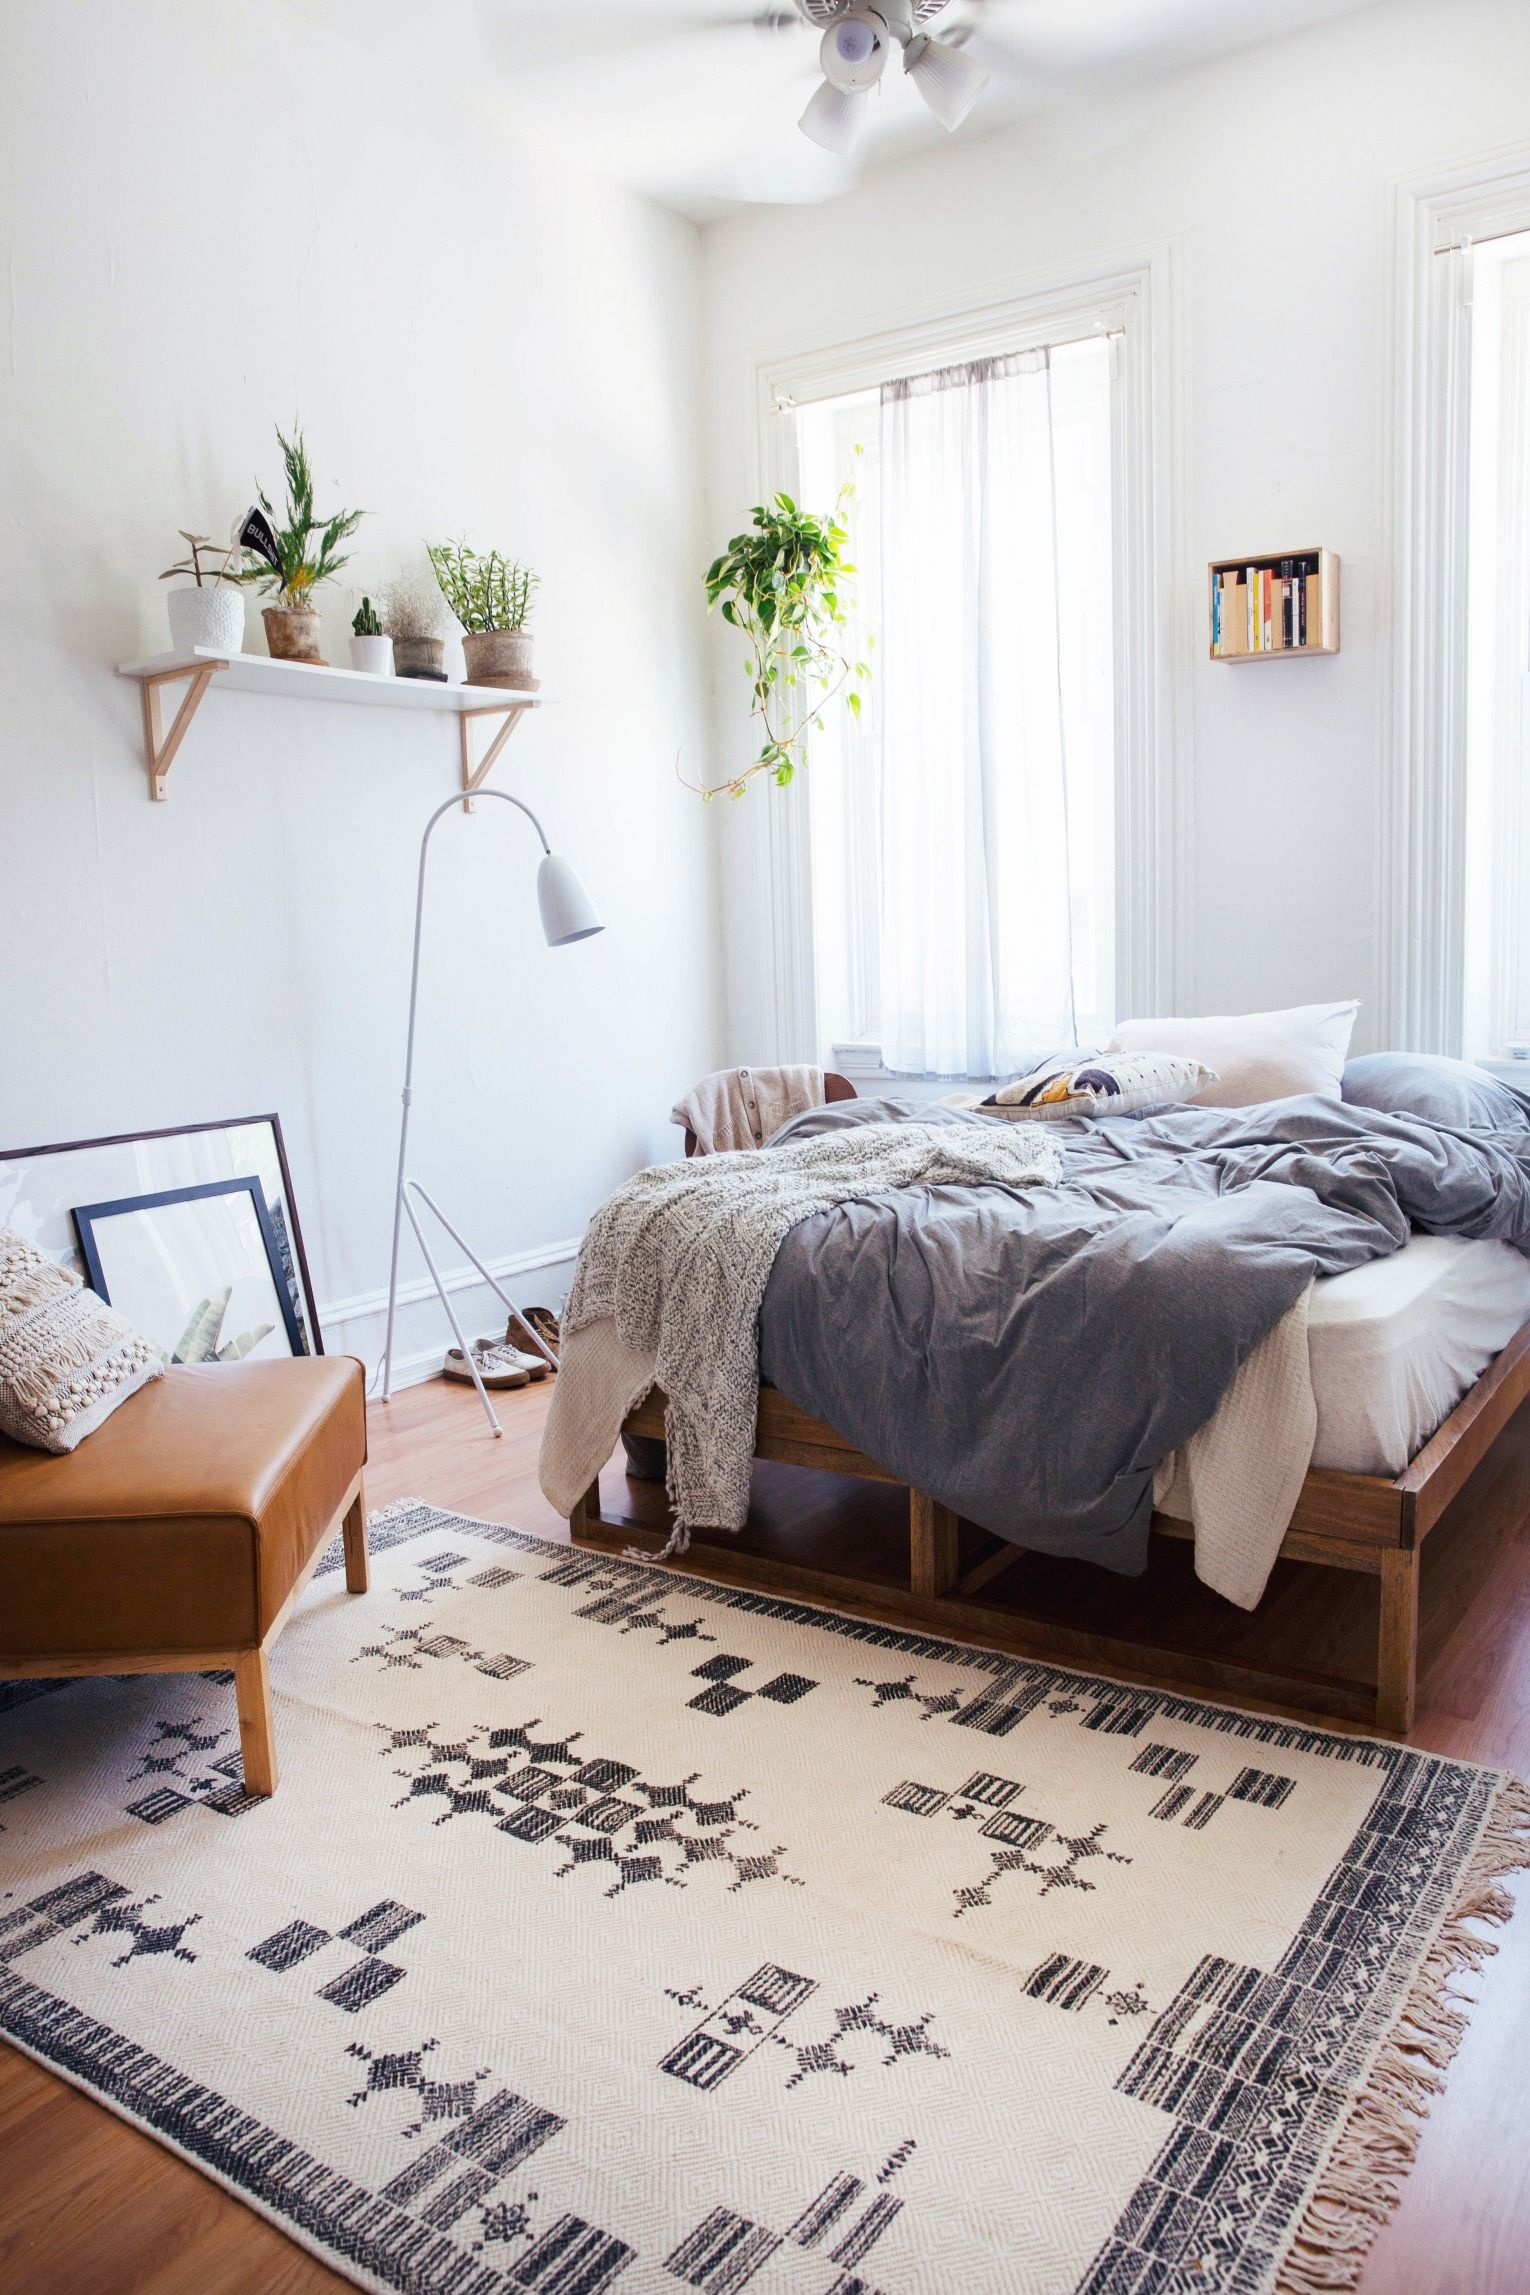 Teppich Urban Outfitters Uo Interviews Mike Hogan Bedroom Schlafzimmer